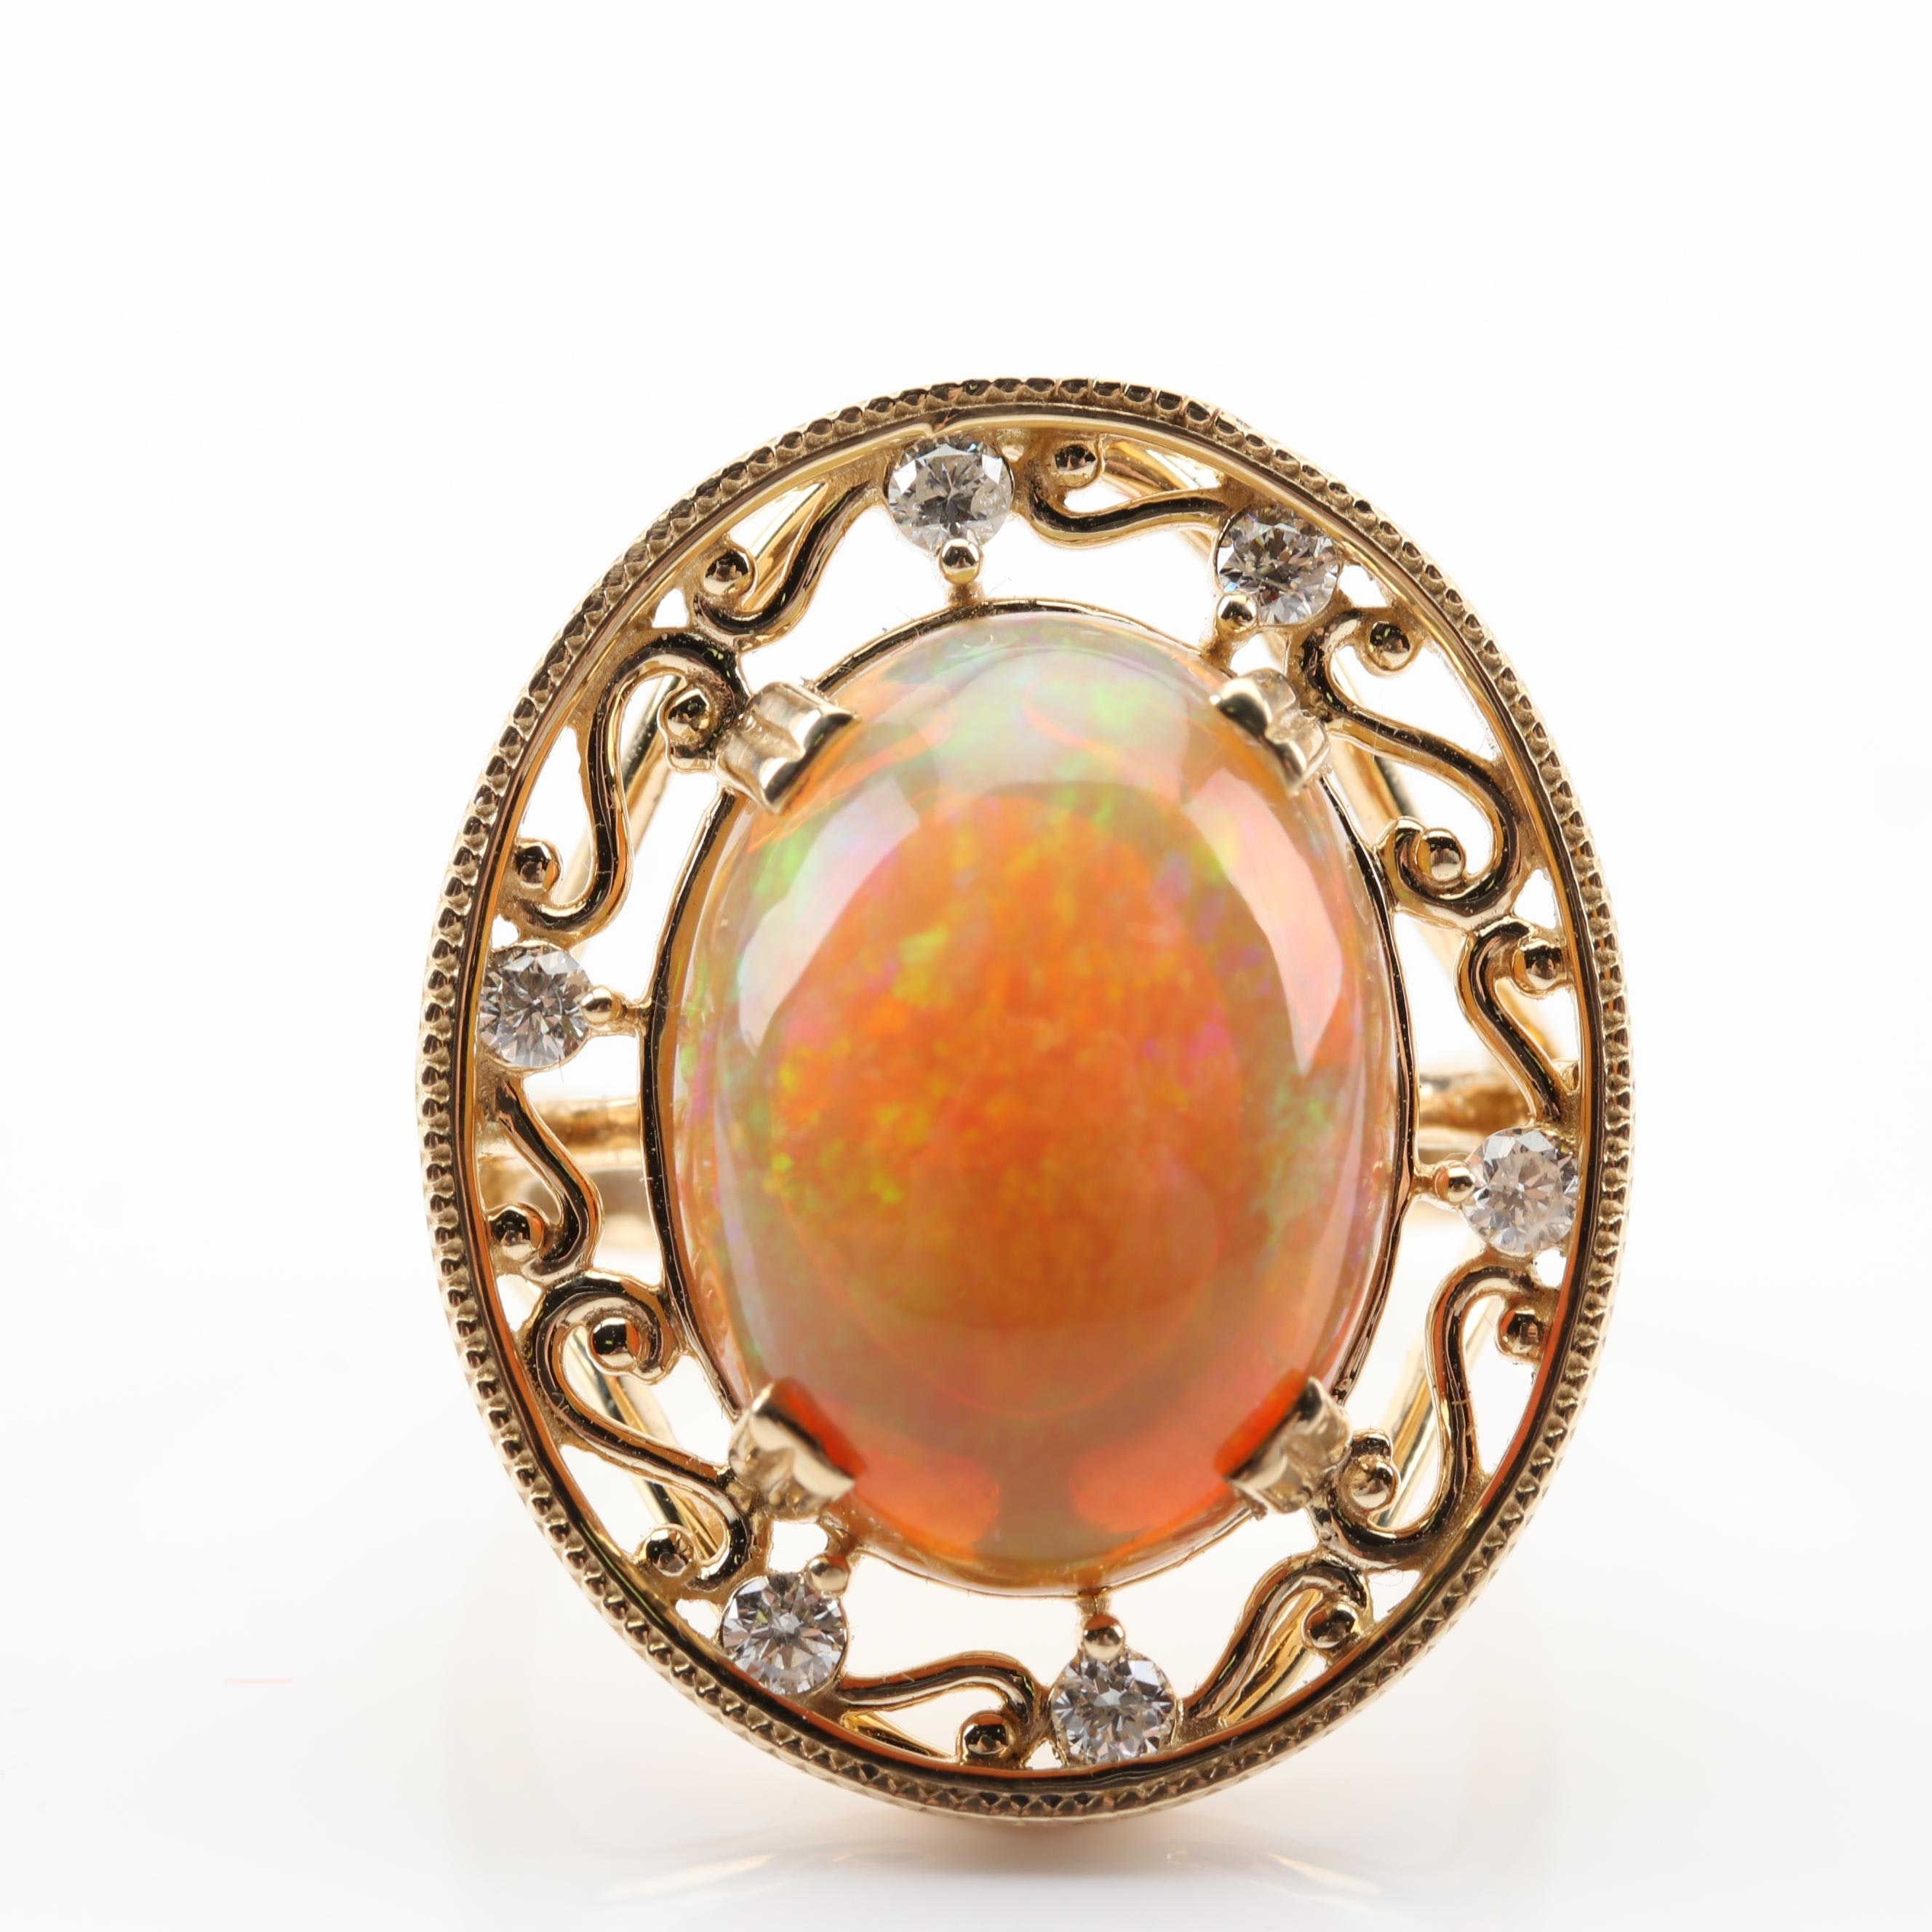 14K Yellow Gold 5.90 CT Opal and Diamond Ring